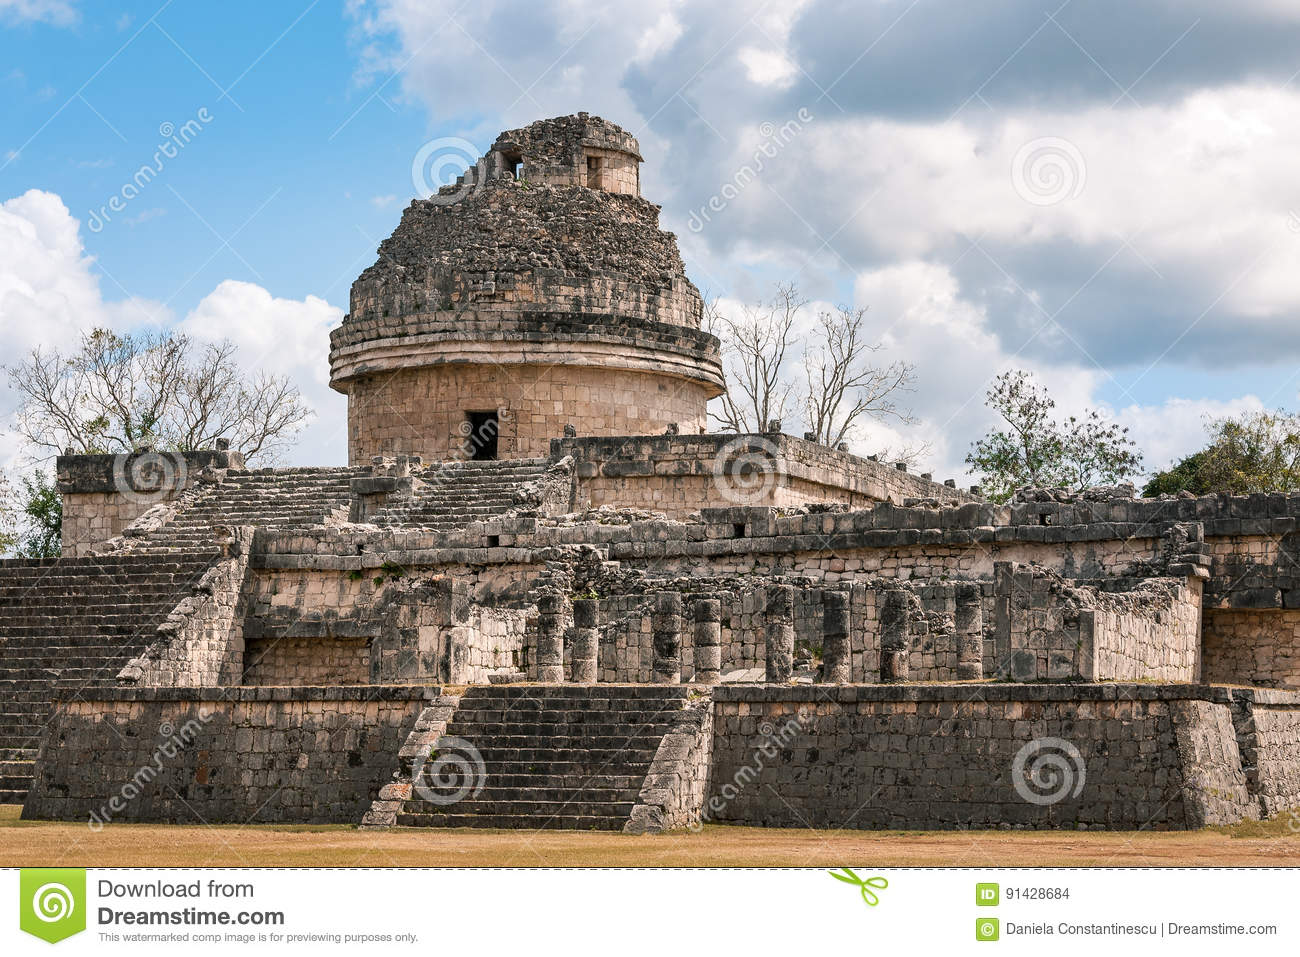 The Observatory at Chichen Itza, Mexico